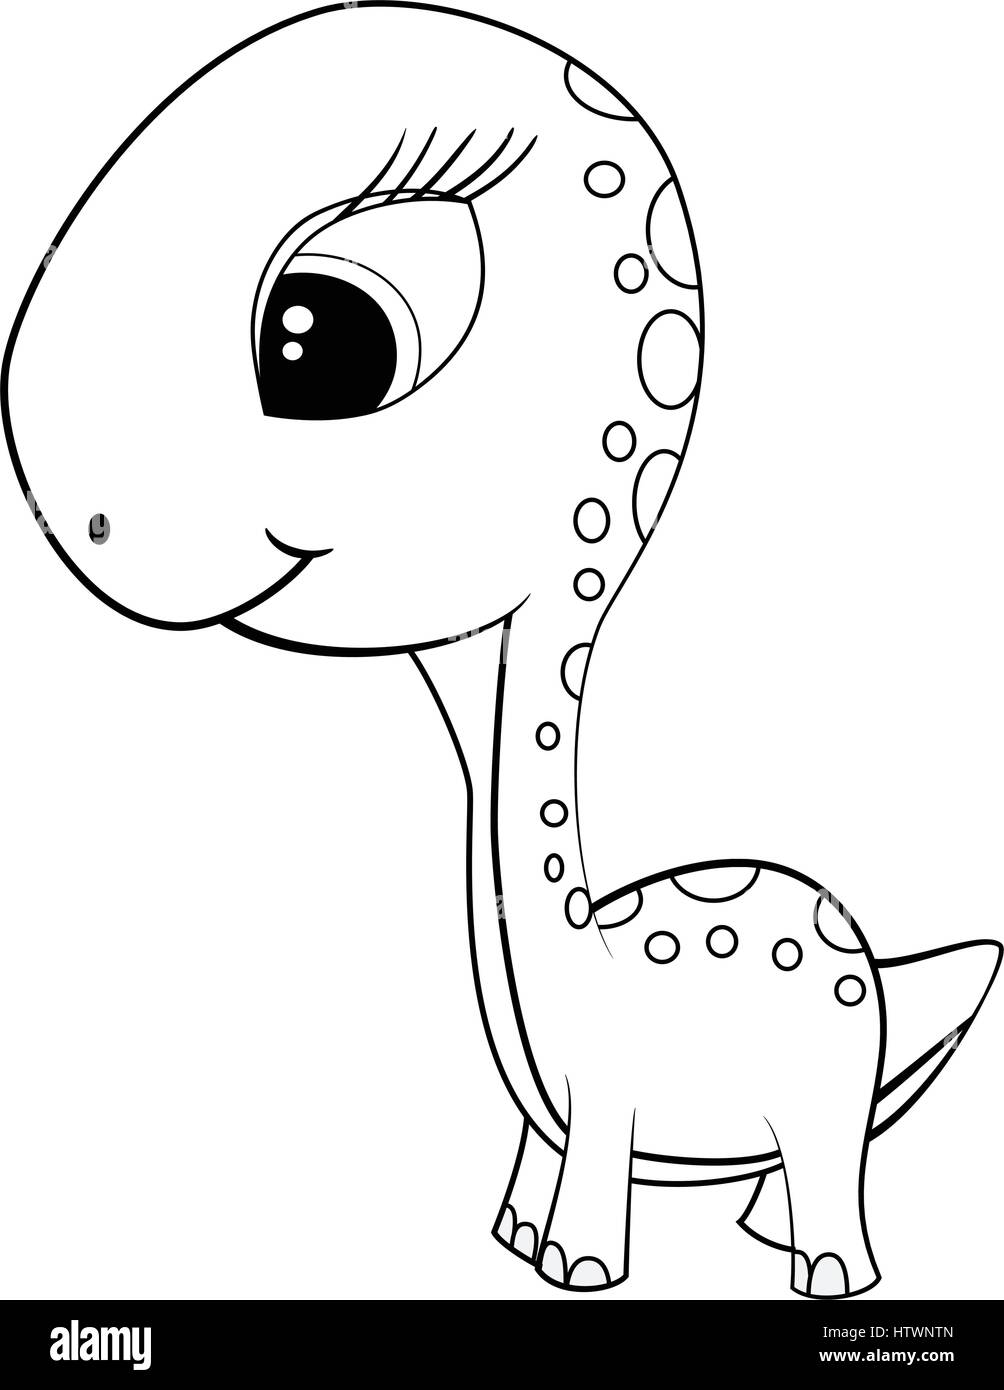 Image of: Png Illustration Of Cute Cartoon Of Green Baby Brontosaurus Dinosaur Vector Eps8 Alamy Illustration Of Cute Cartoon Of Green Baby Brontosaurus Dinosaur